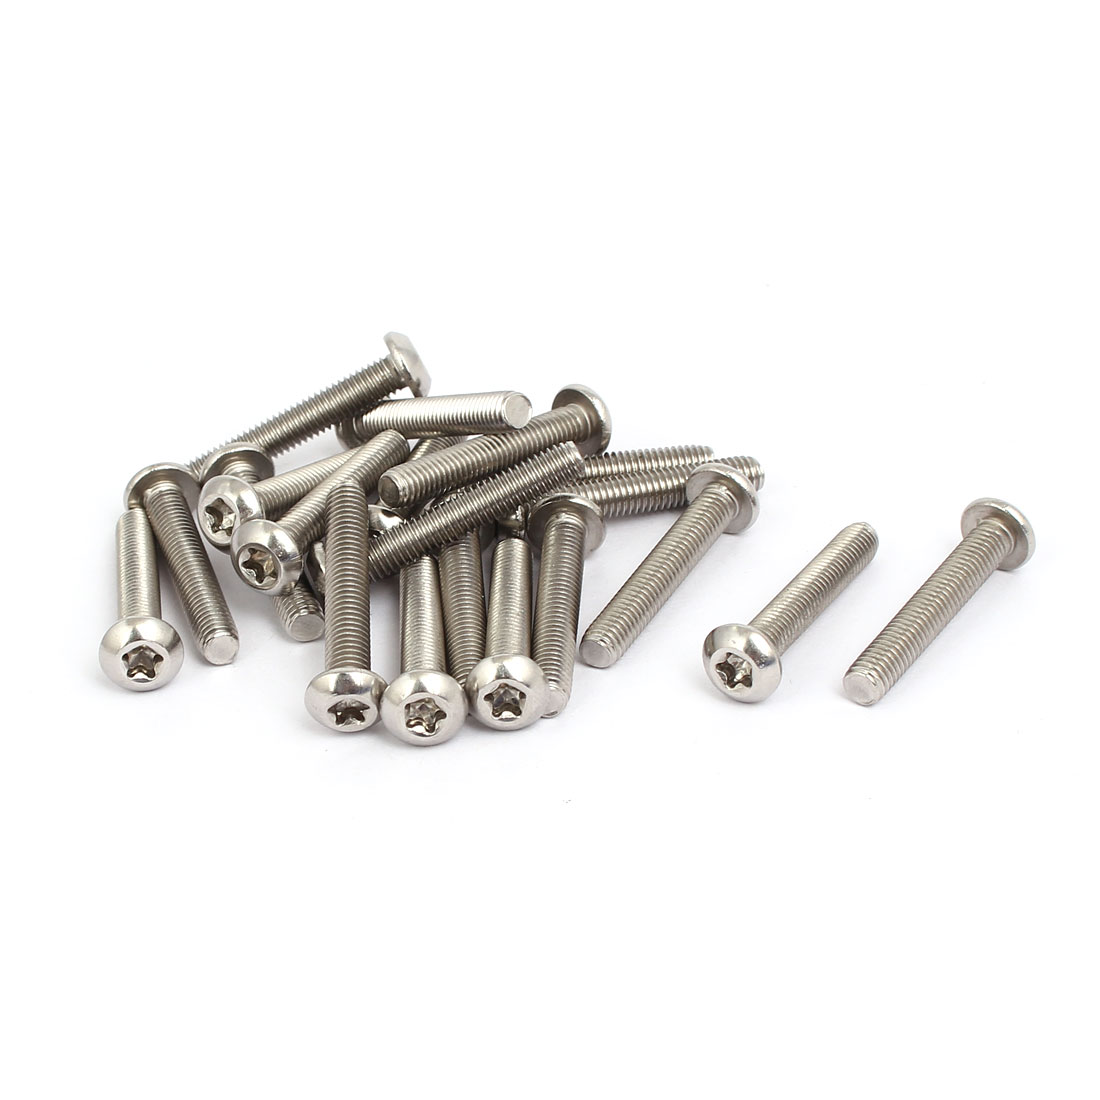 M5x30mm 304 Stainless Steel Fully Thread Torx Five-Lobe Screw Fastener 20pcs